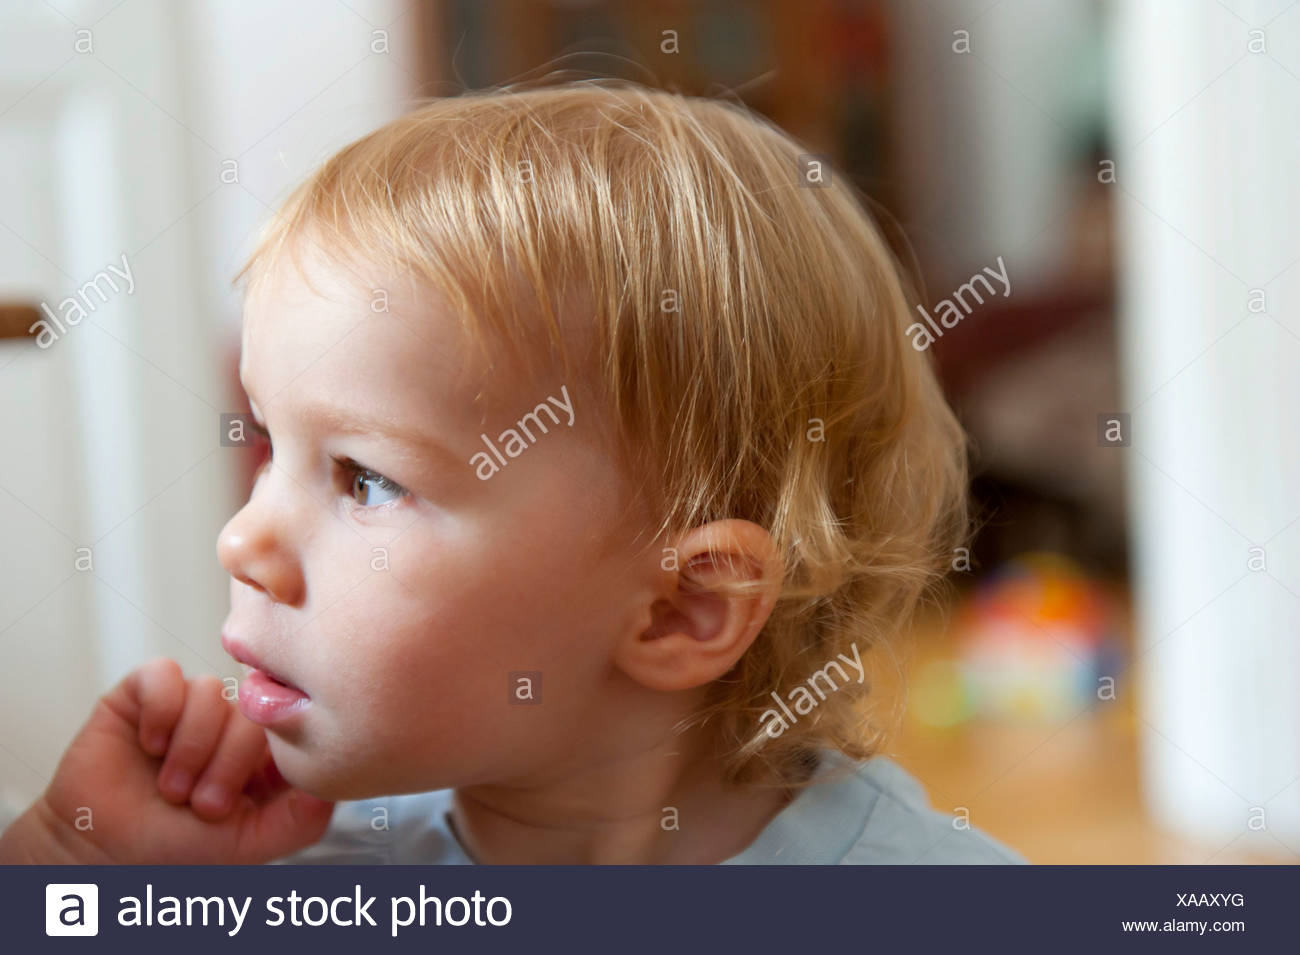 Toddler, with a pensive and interested face, portrait, inside an apartment, Munich, Bavaria - Stock Image